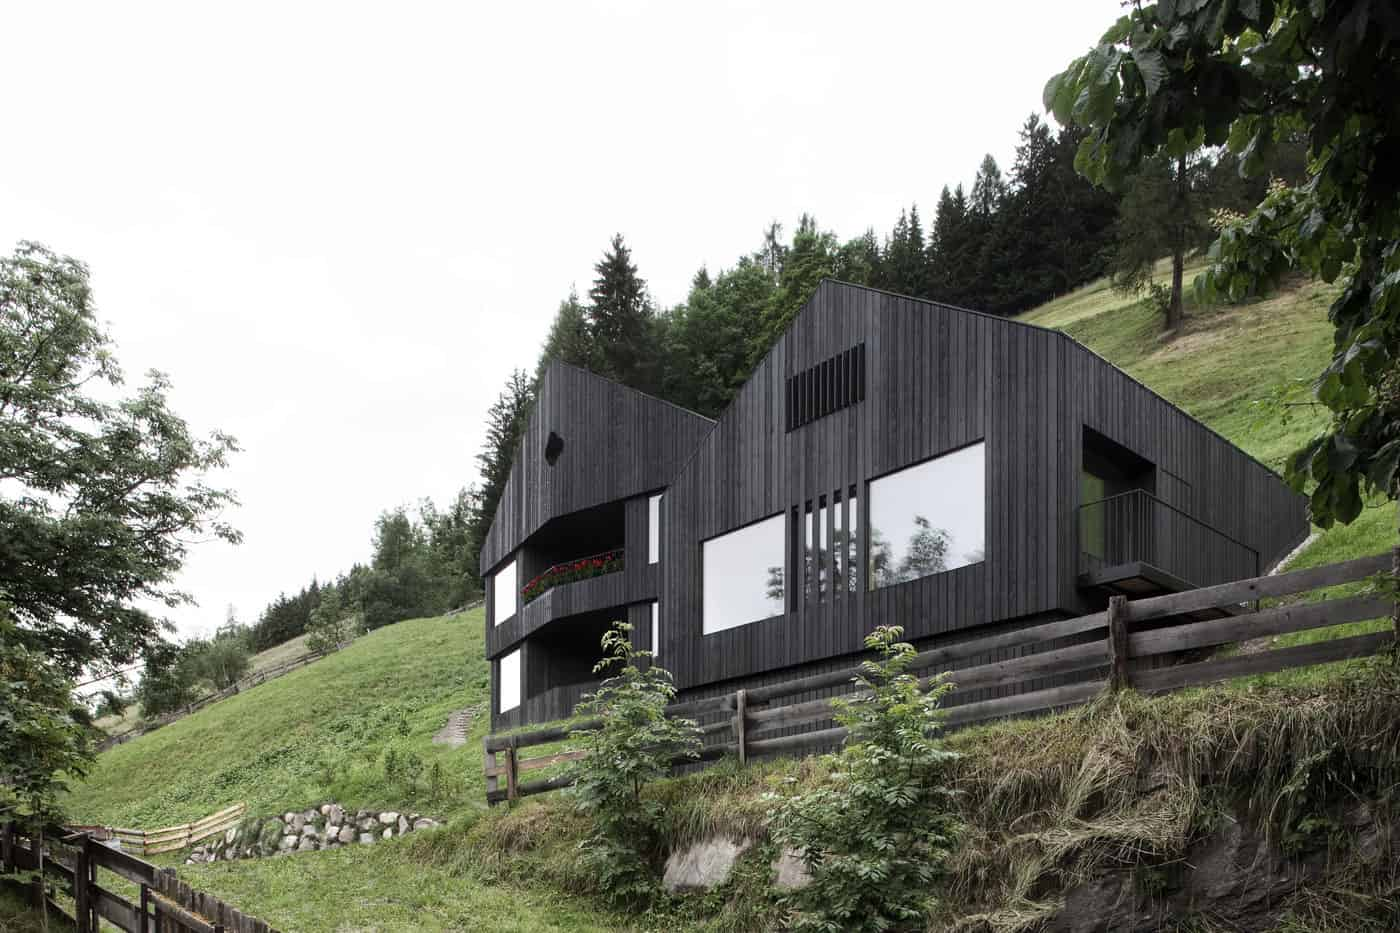 Mountain Vacation Villa in Italy built with Local Dolomite and Wood